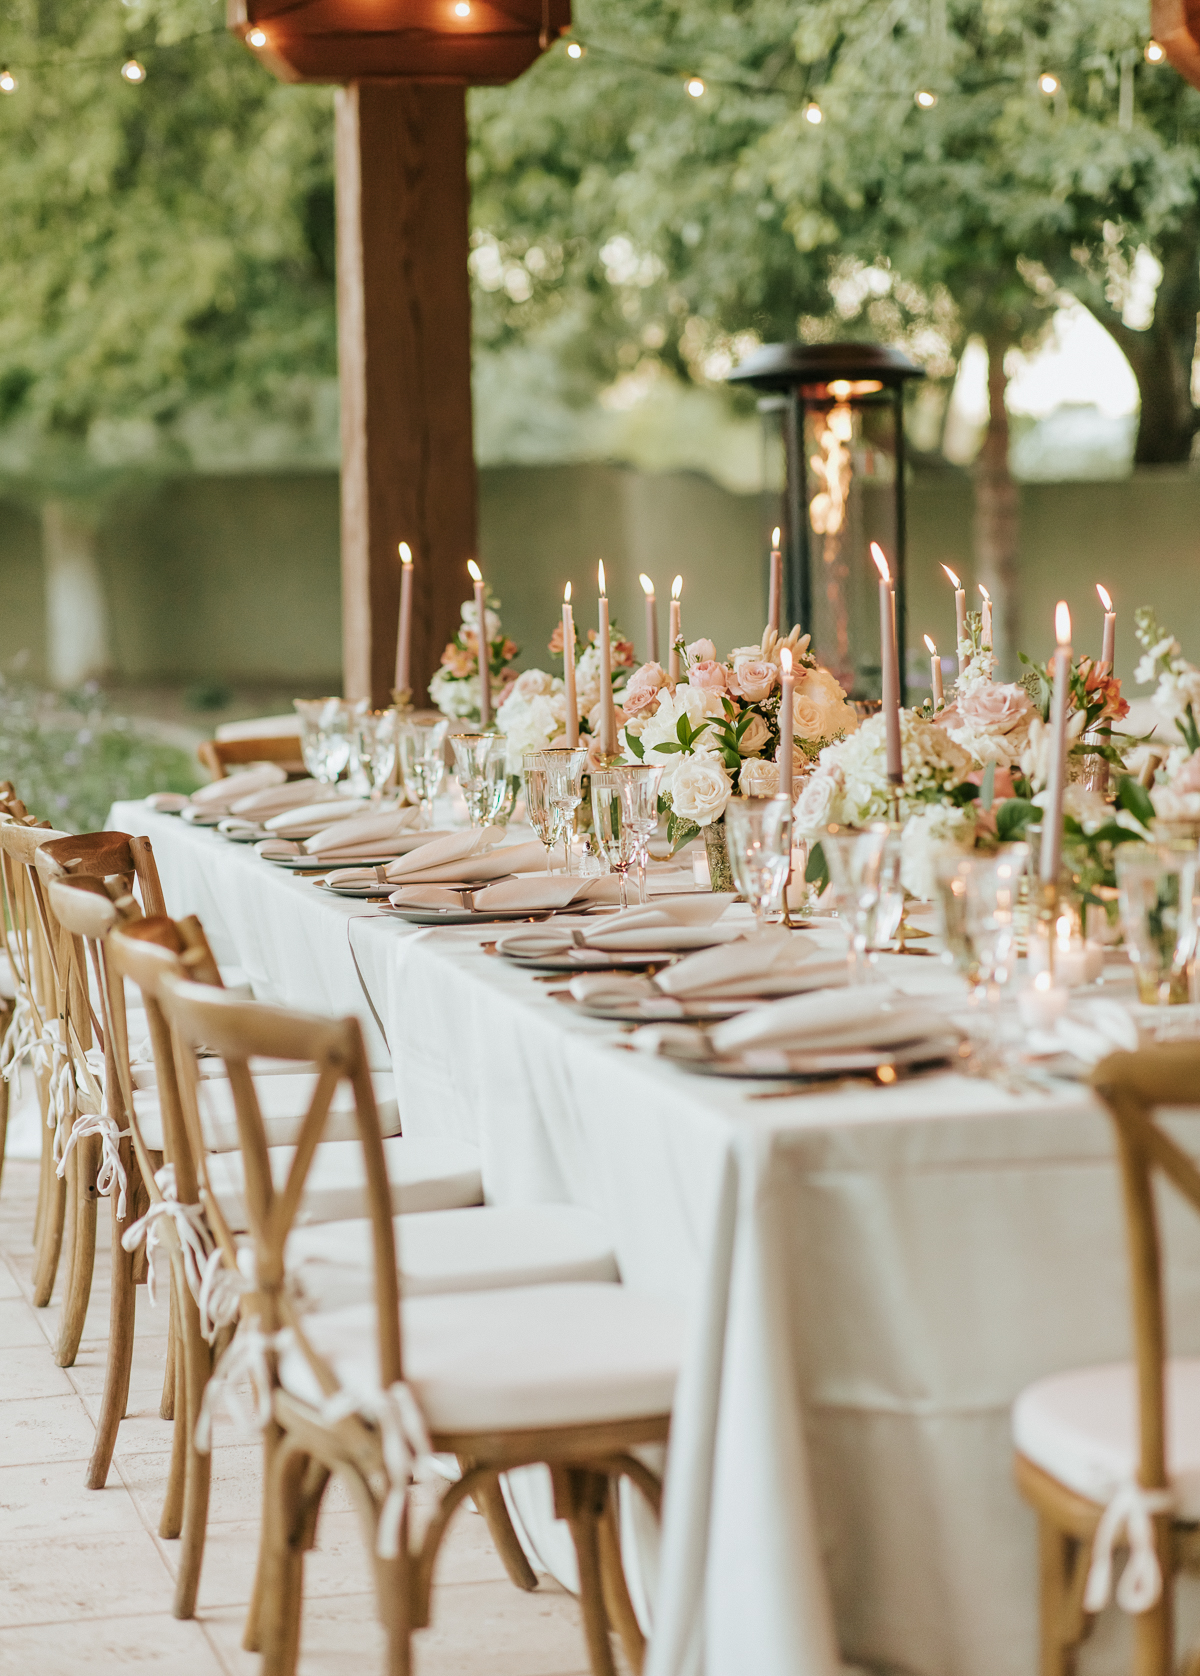 Megan Claire Photography | Arizona Wedding Photographer.  Elegant Scottsdale Backyard Wedding Reception Details